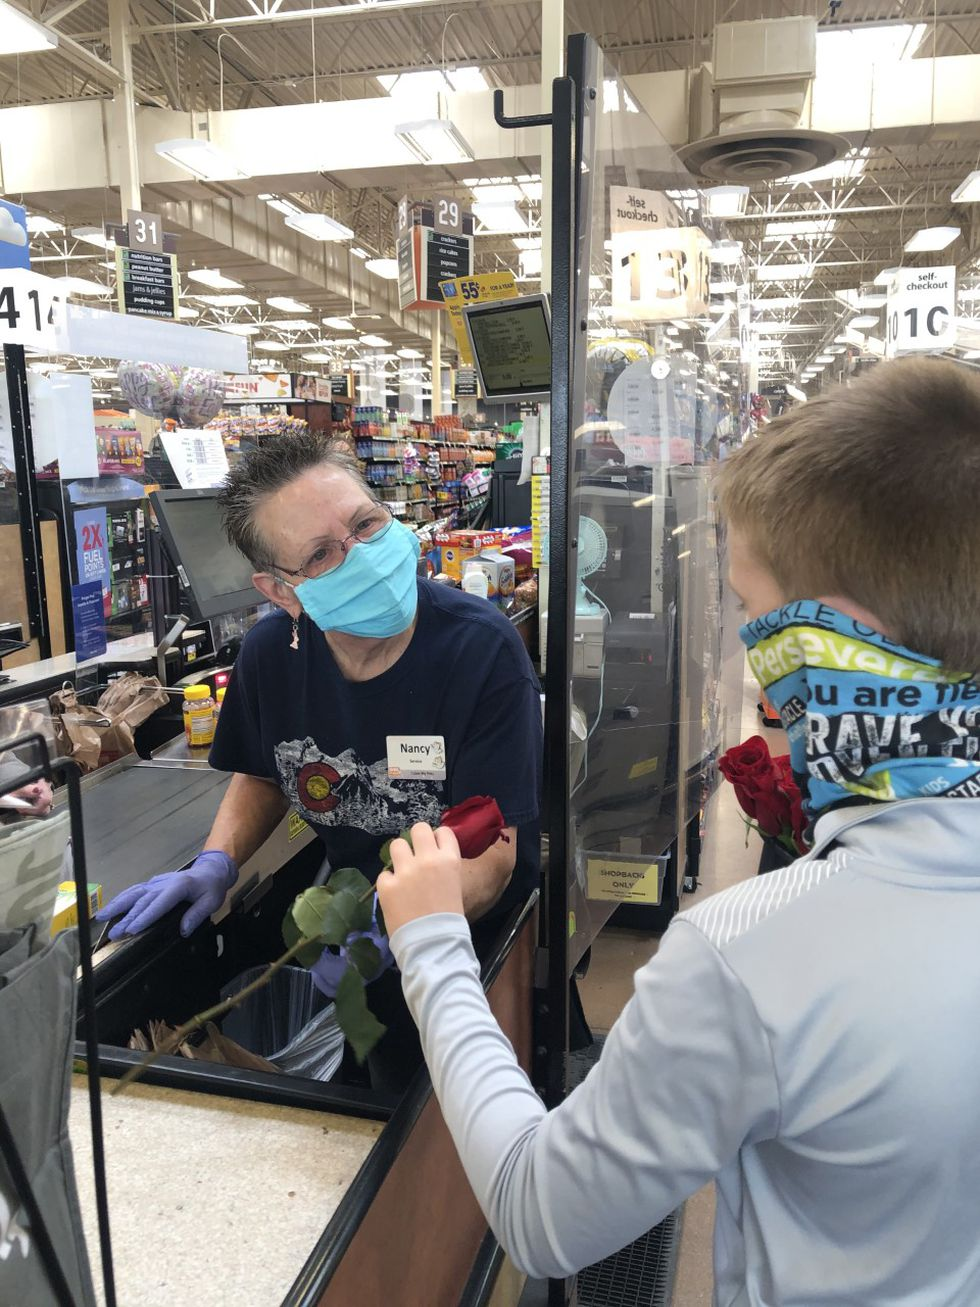 11-year-old JJ Witmer is from Brighton, Colorado and is doing what he can to spread some joy to...